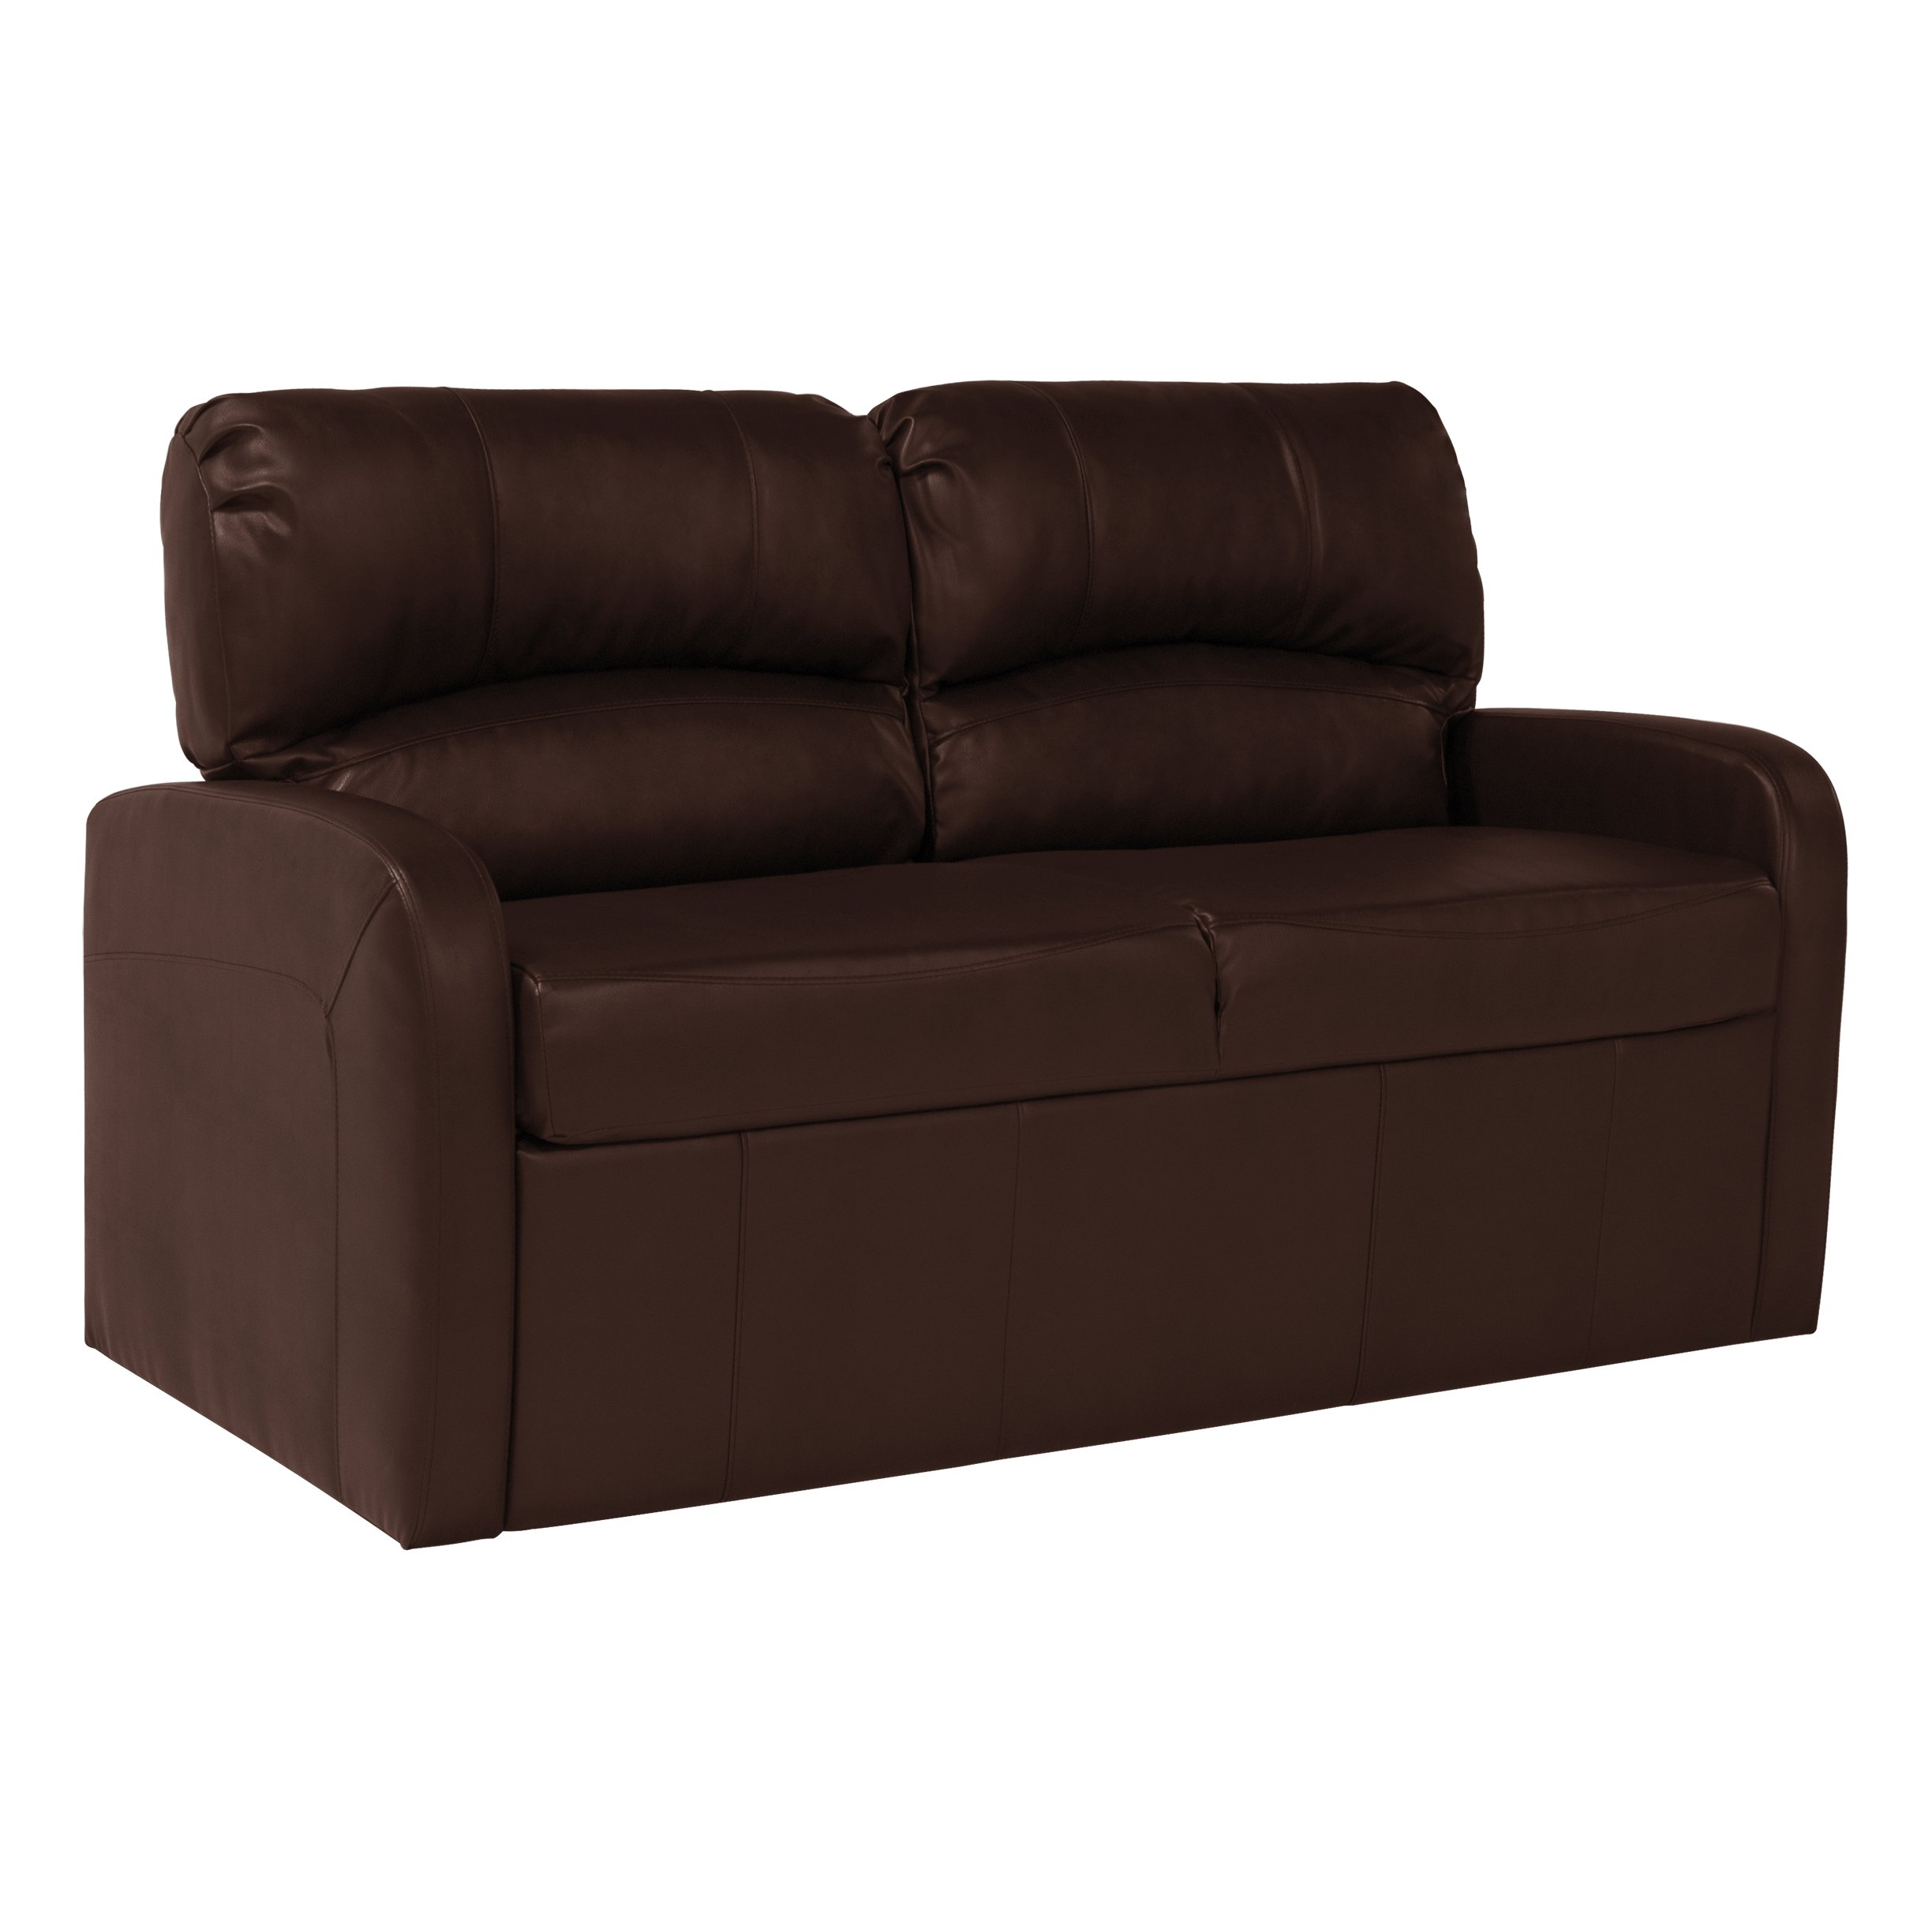 Sofa Couch For Rv Cheap Rv Sofa Covers Find Rv Sofa Covers Deals On Line At Alibaba